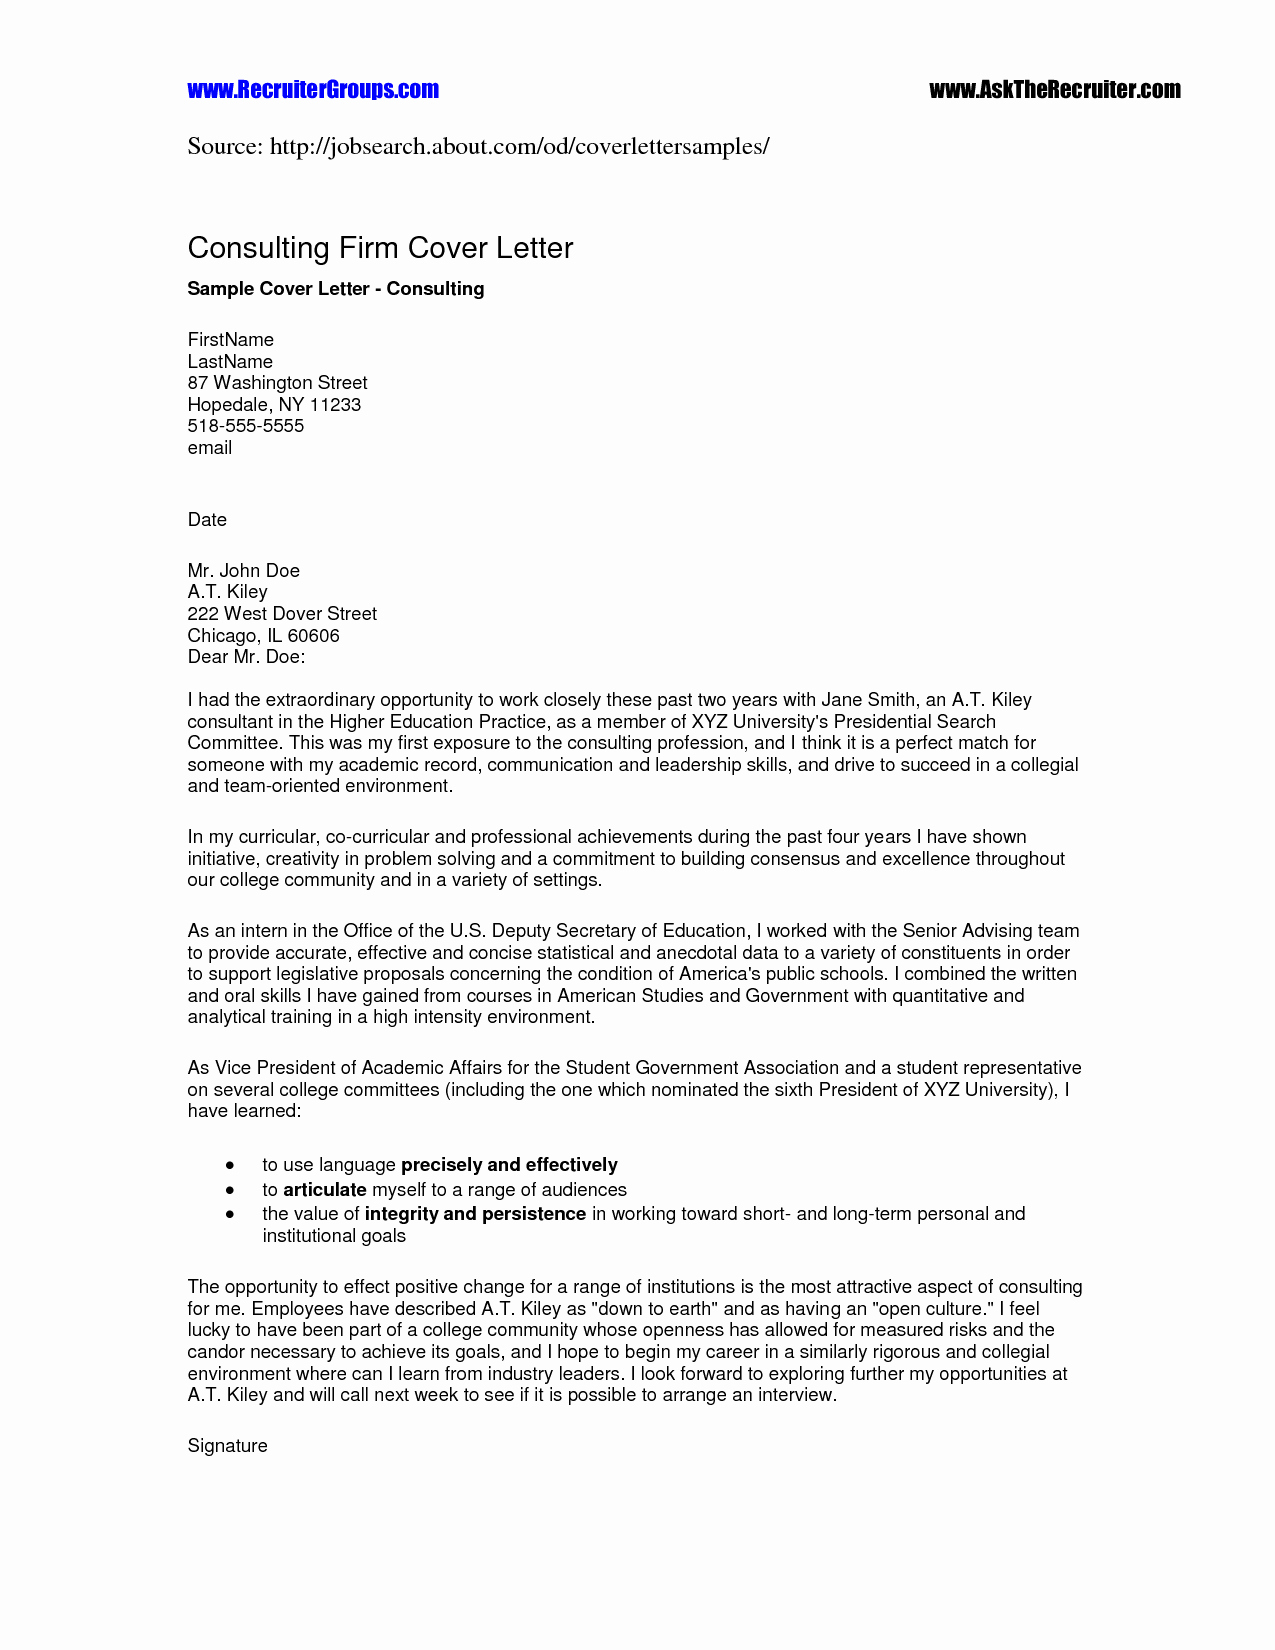 Group Resume Template for A Hotel - Criminal Record Disclosure Letter Template Download